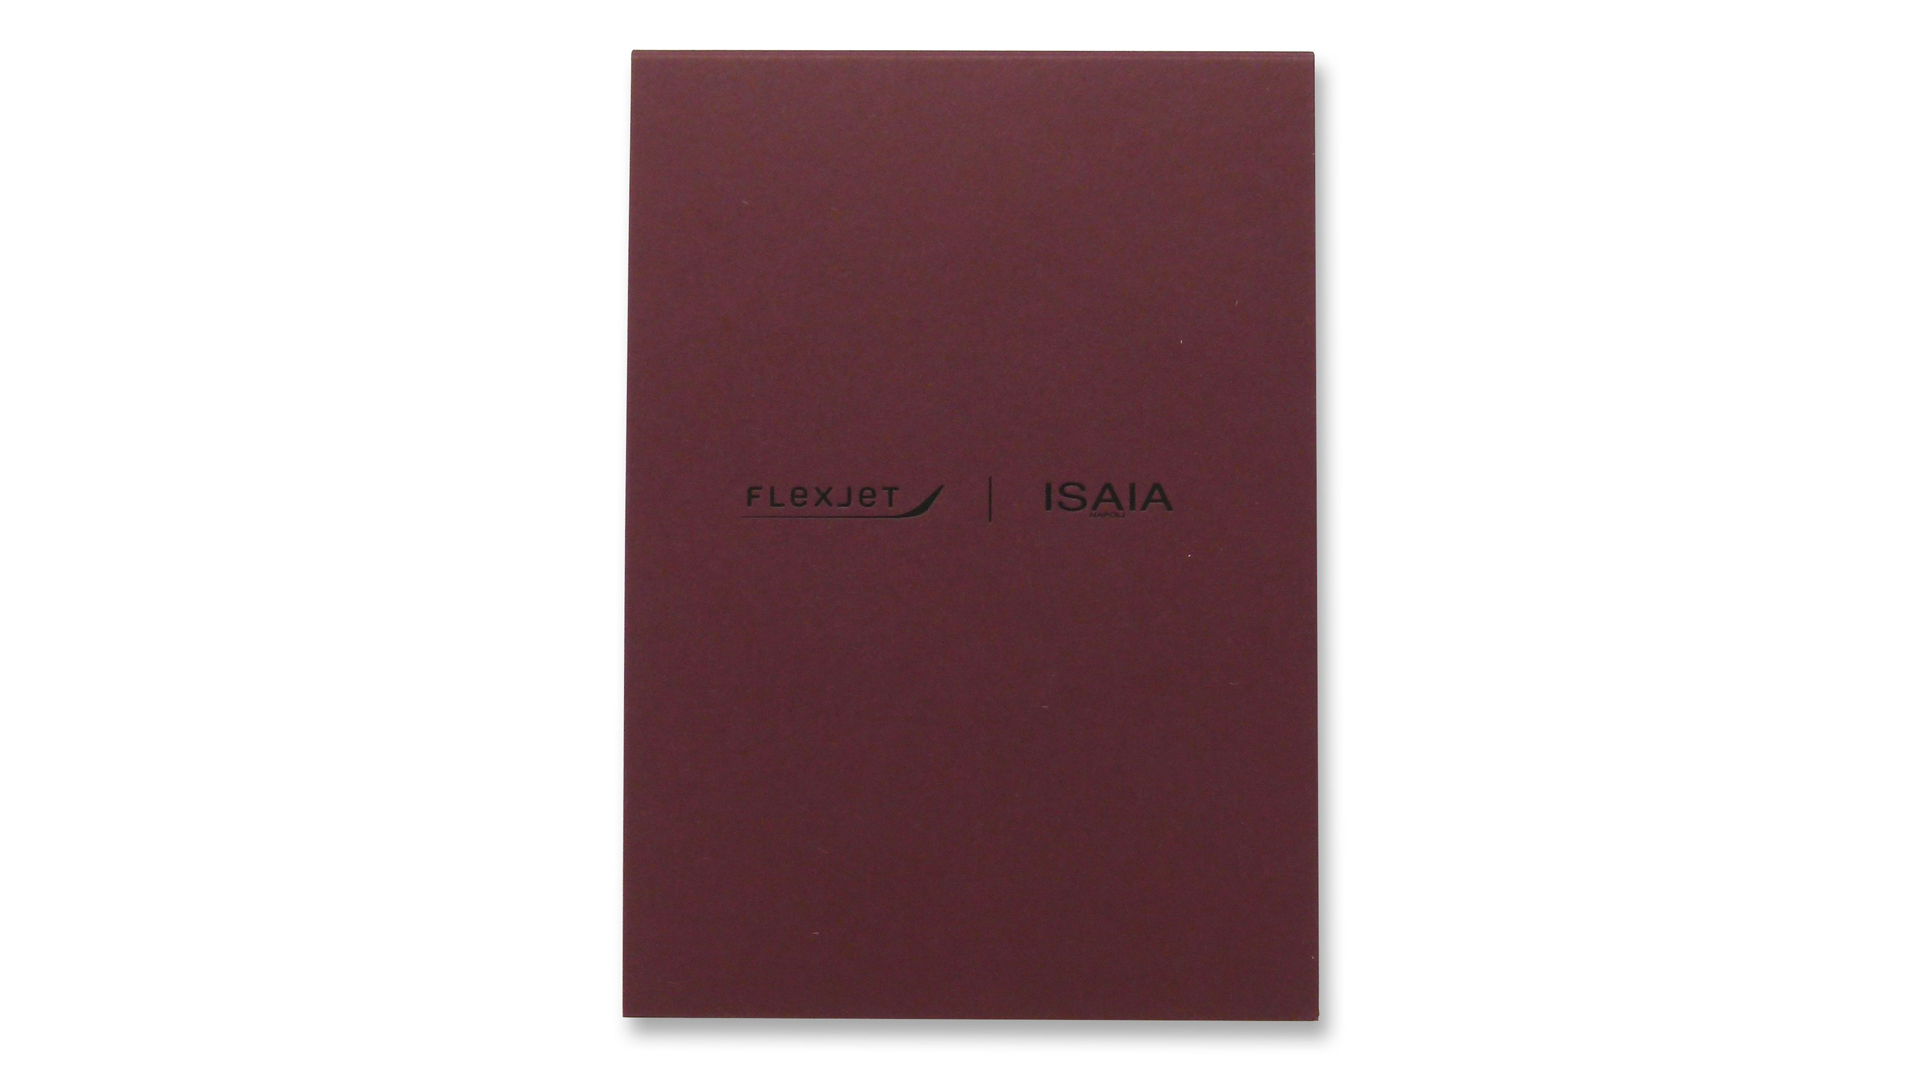 Flexjet-ISAIA Fashion Show Invitation - PaperSpecs